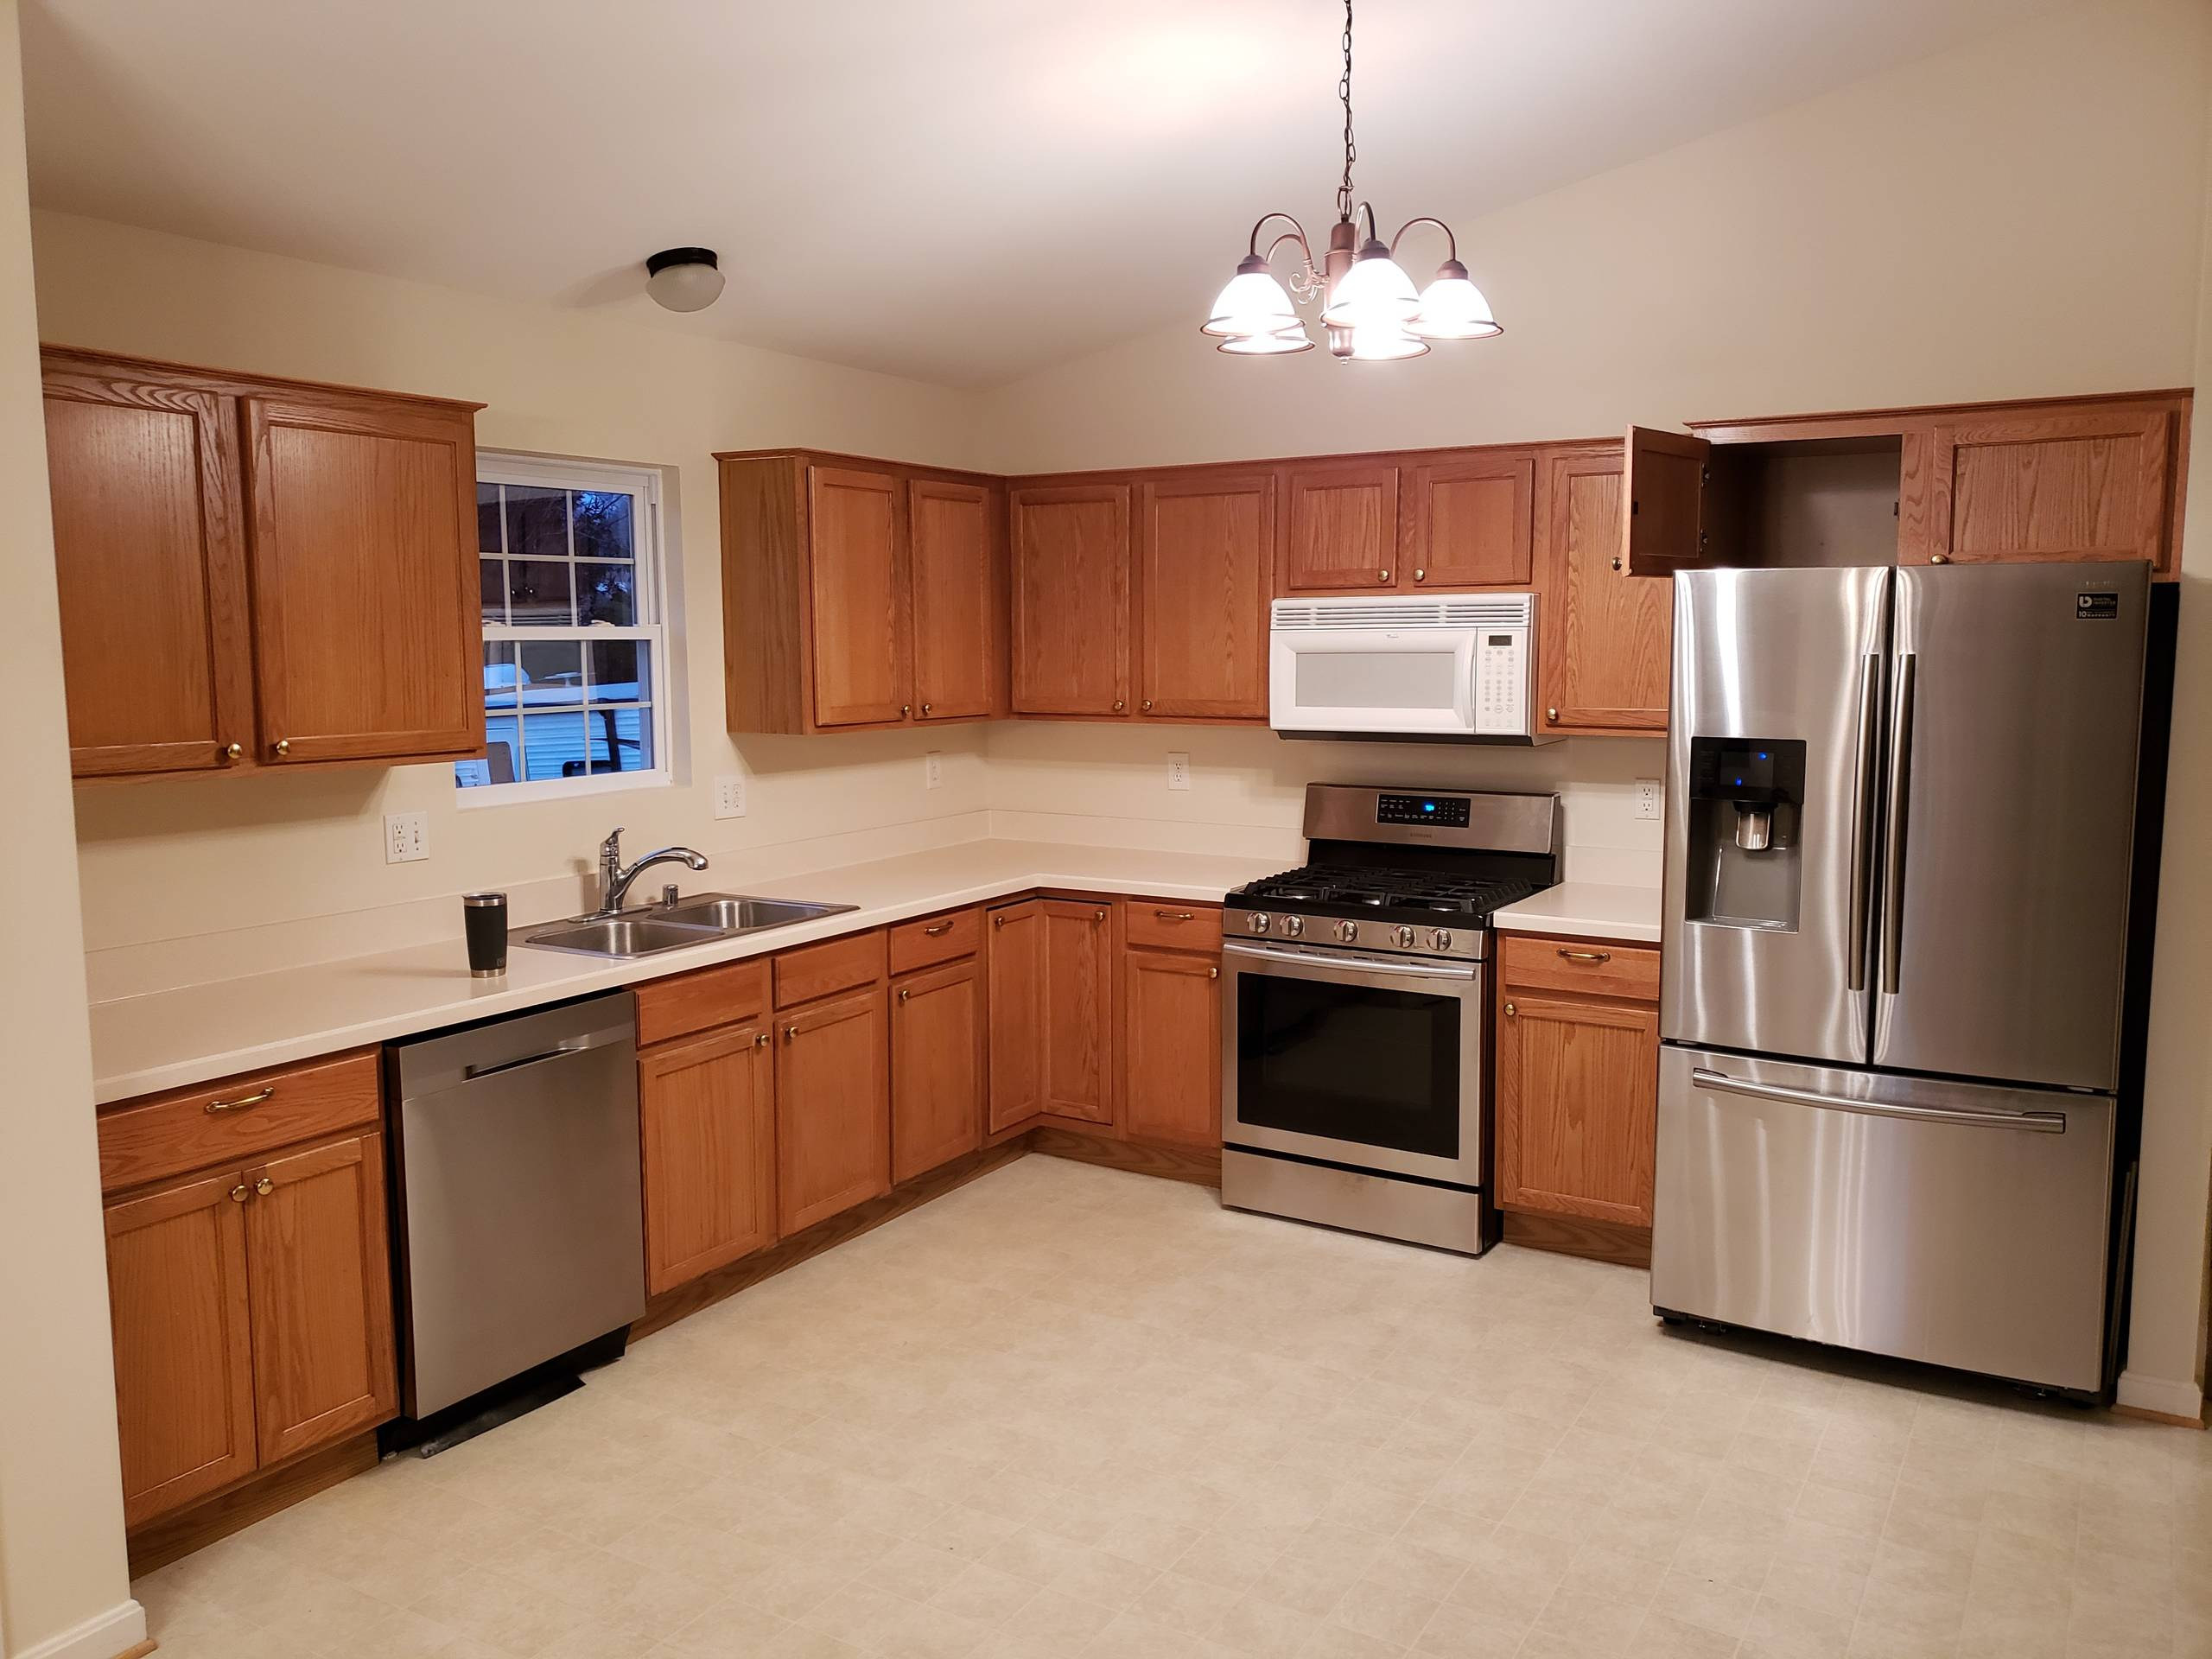 Before Pictures of this Complete Kitchen Remodel - Very Happy Customer!